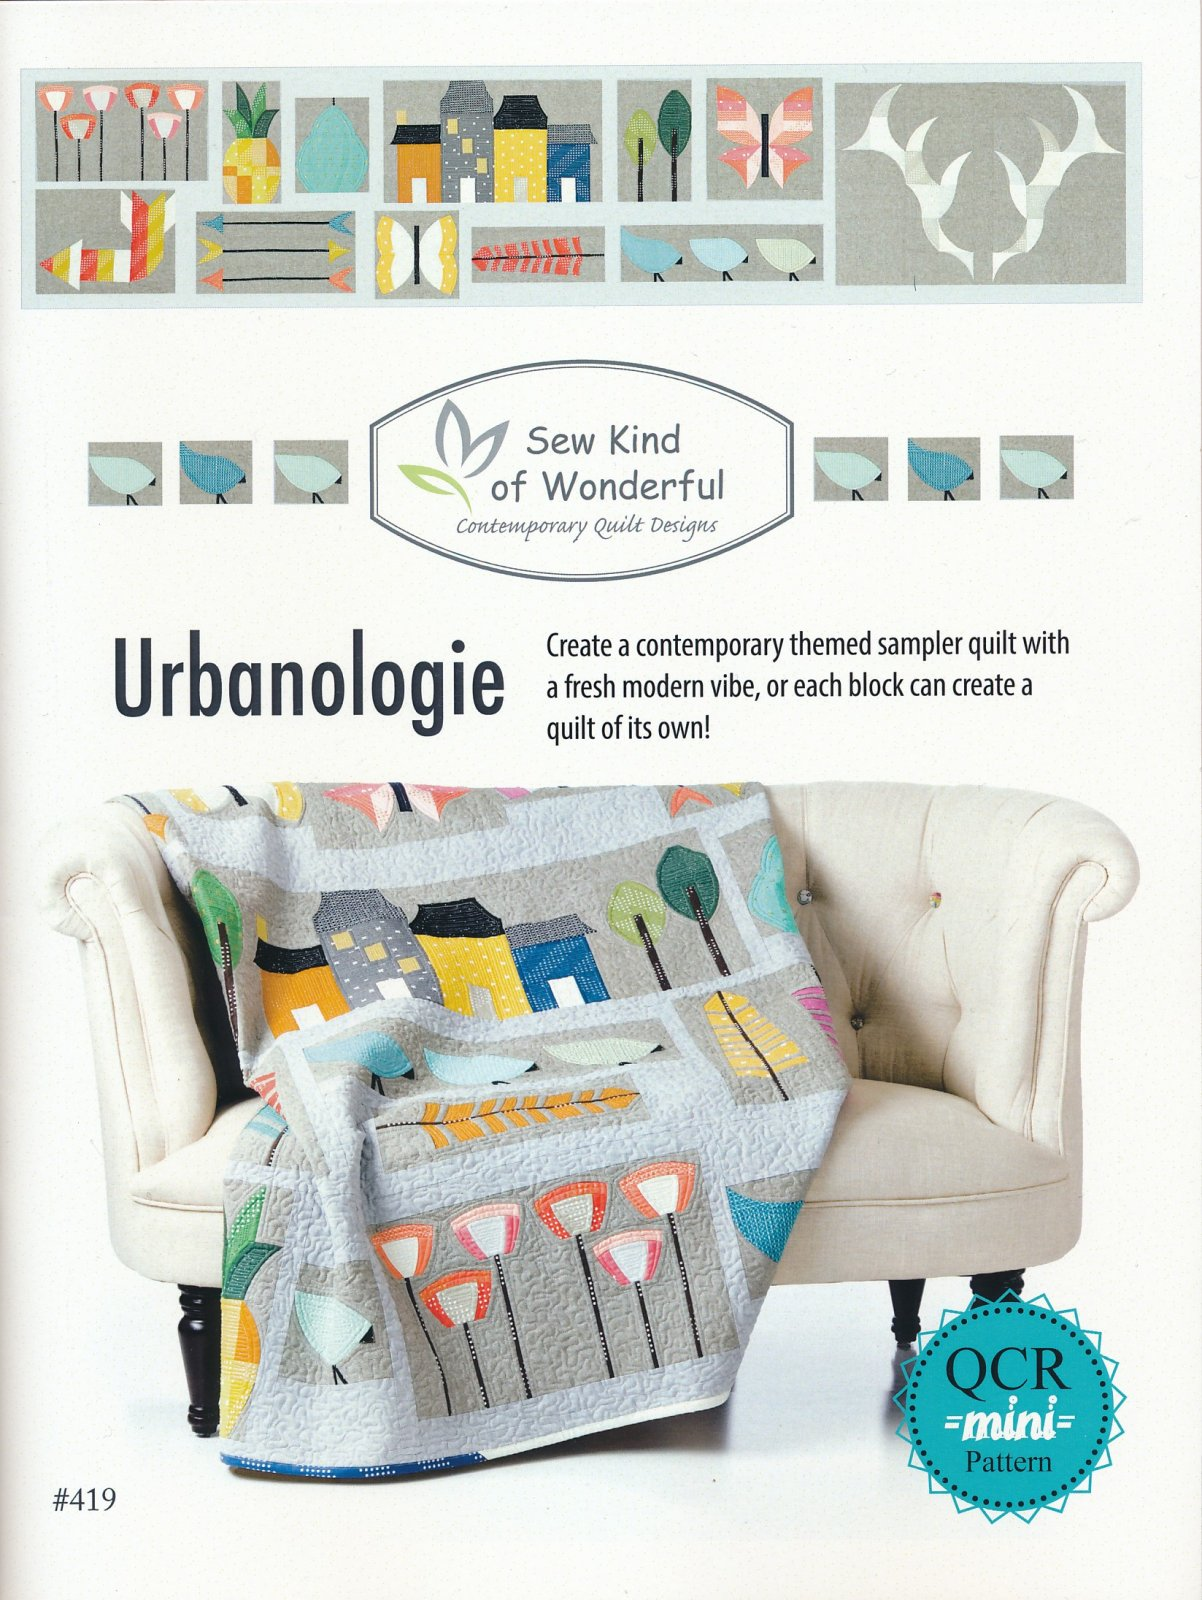 Urbanologie - Contemporary Quilt Designs